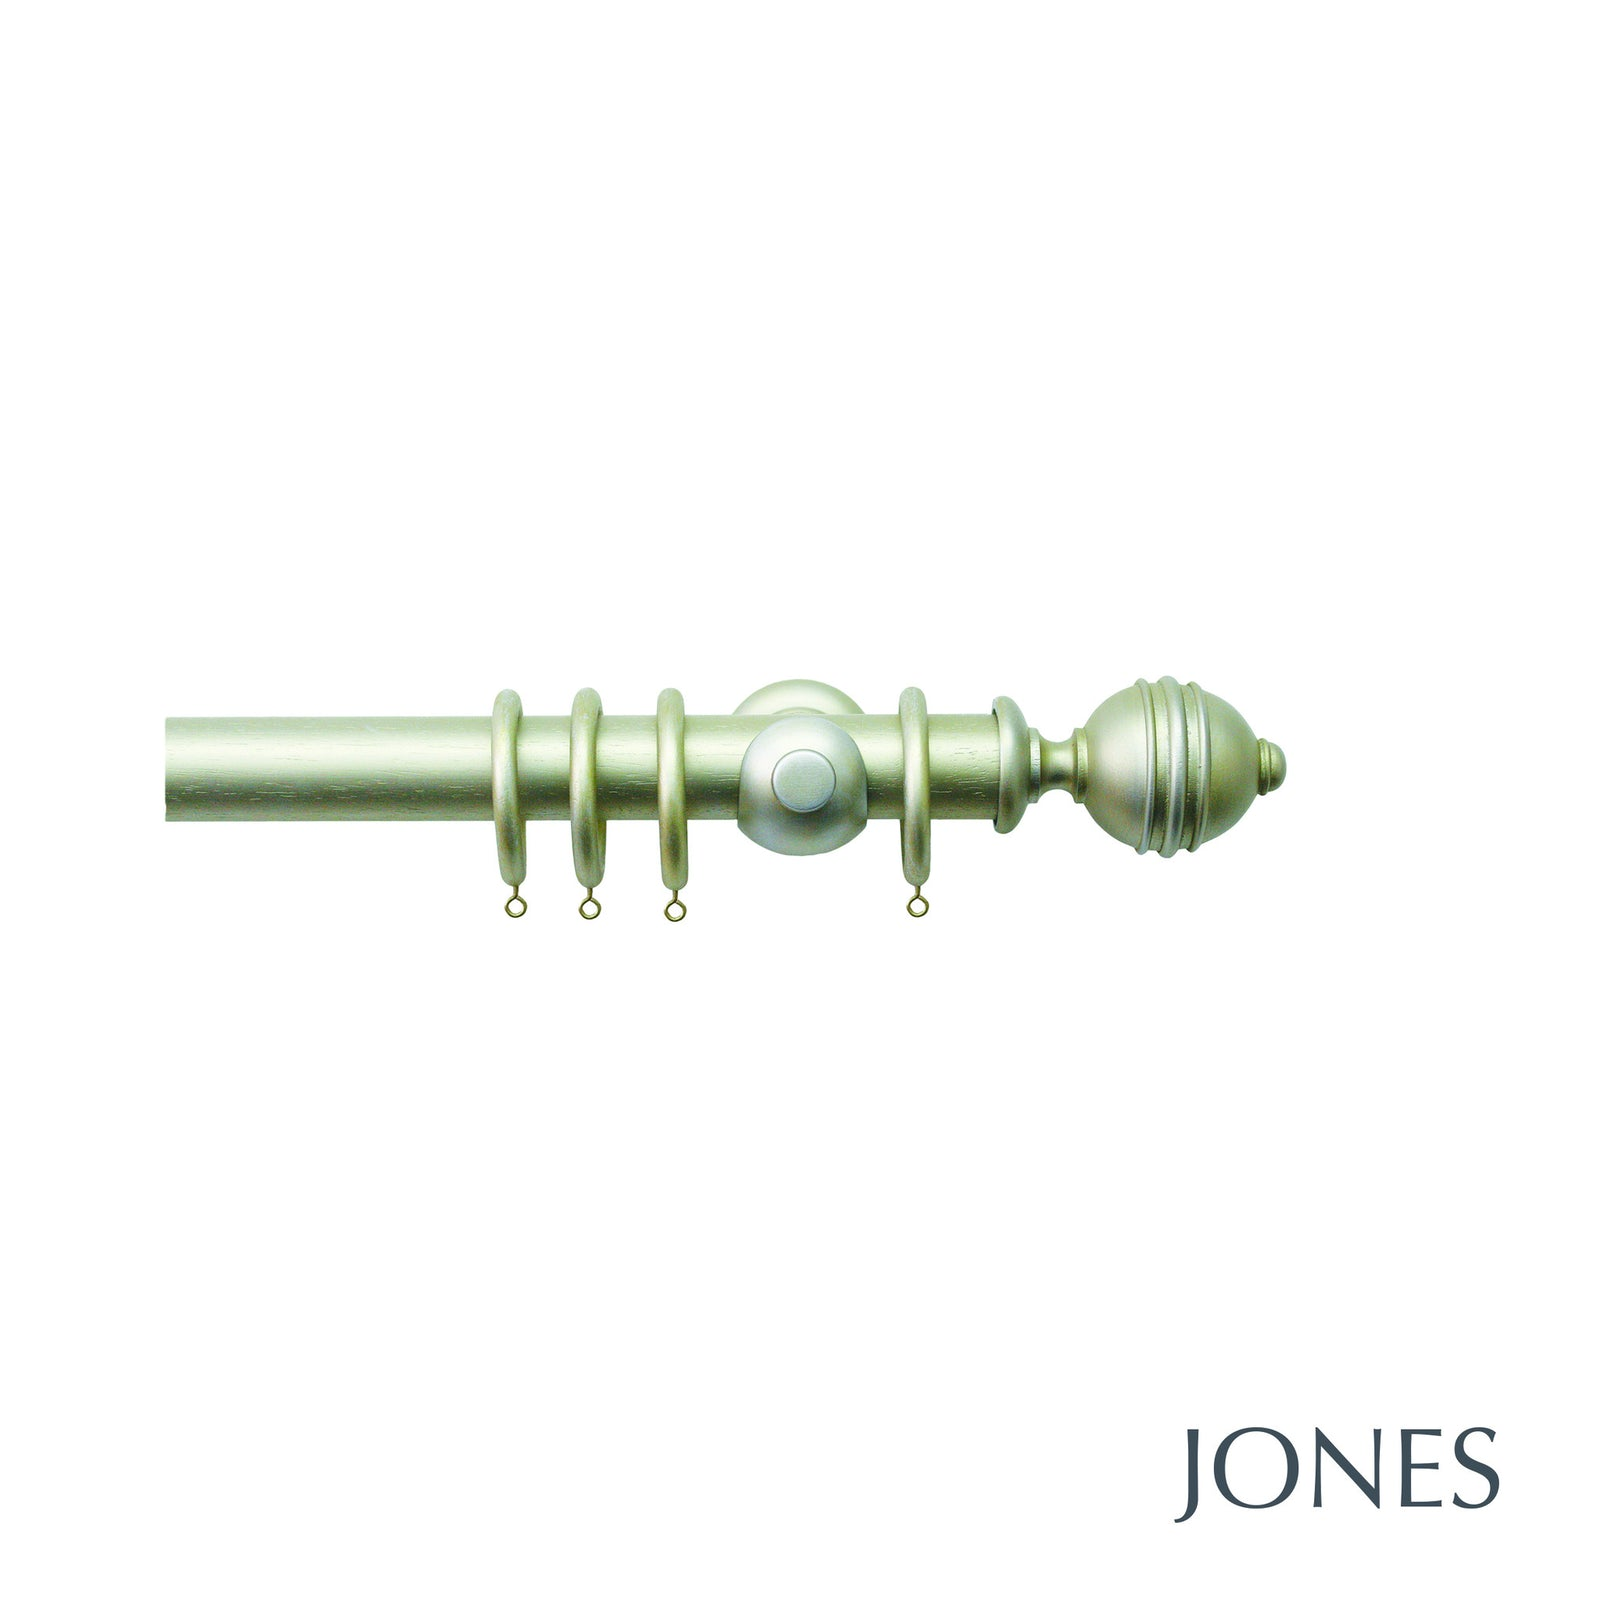 hardwick poles - ribbed ball finials - 40mm - Applemoon Interiors